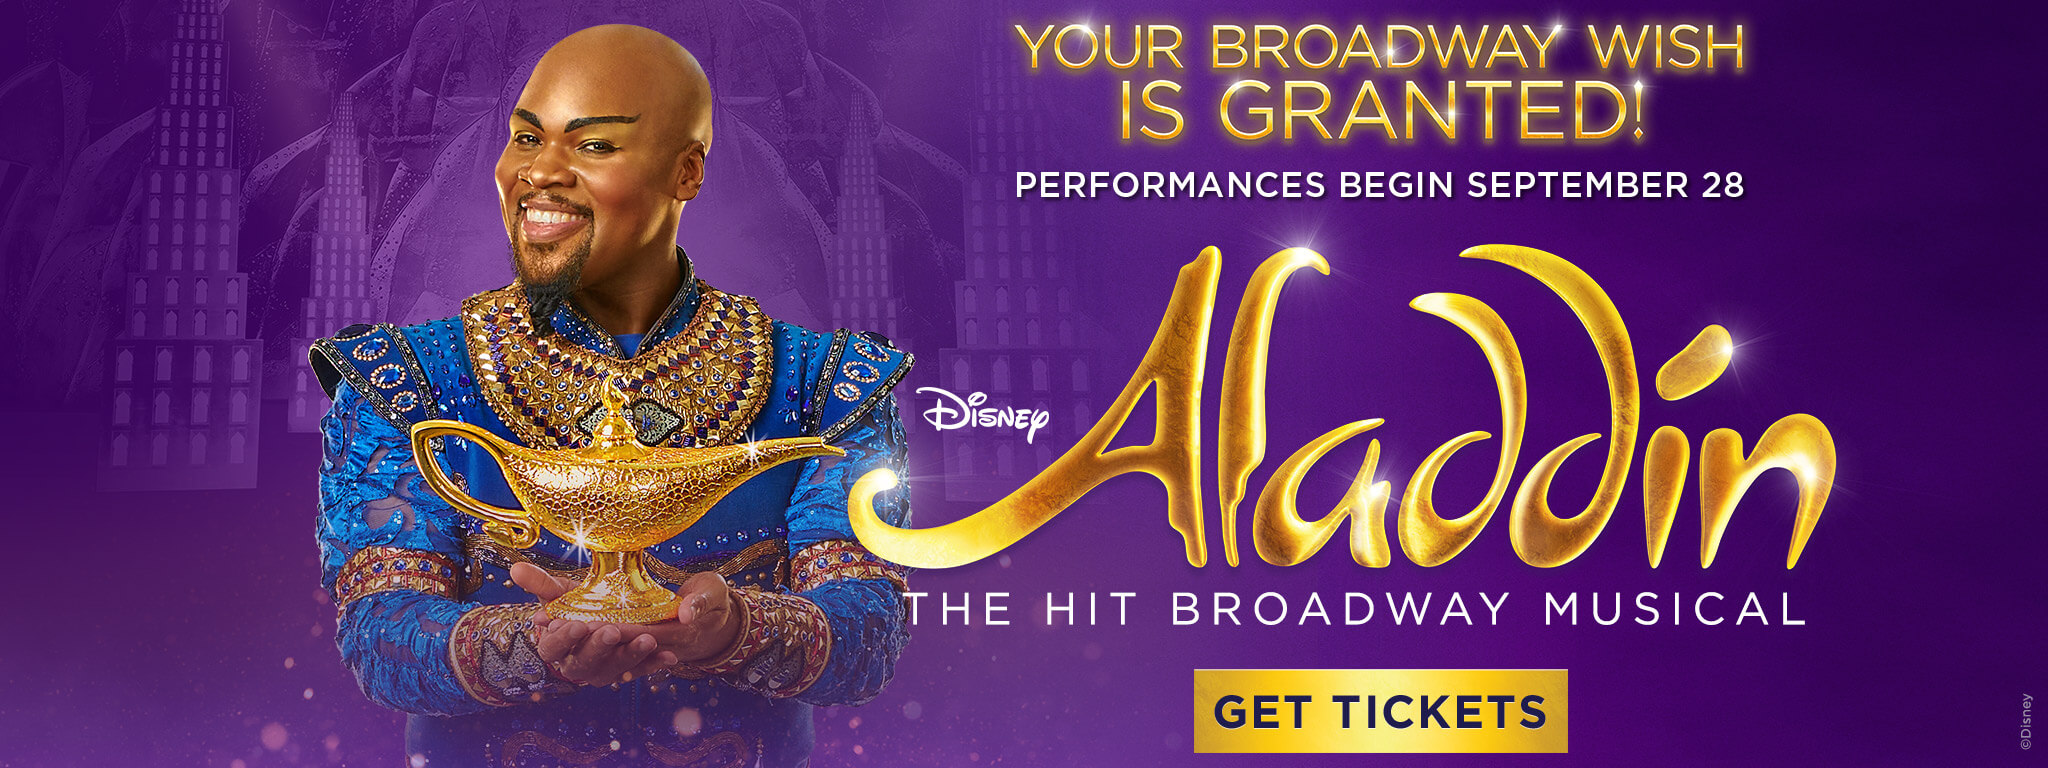 Your Broadway Wish Is Granted! Performances Begin September 28